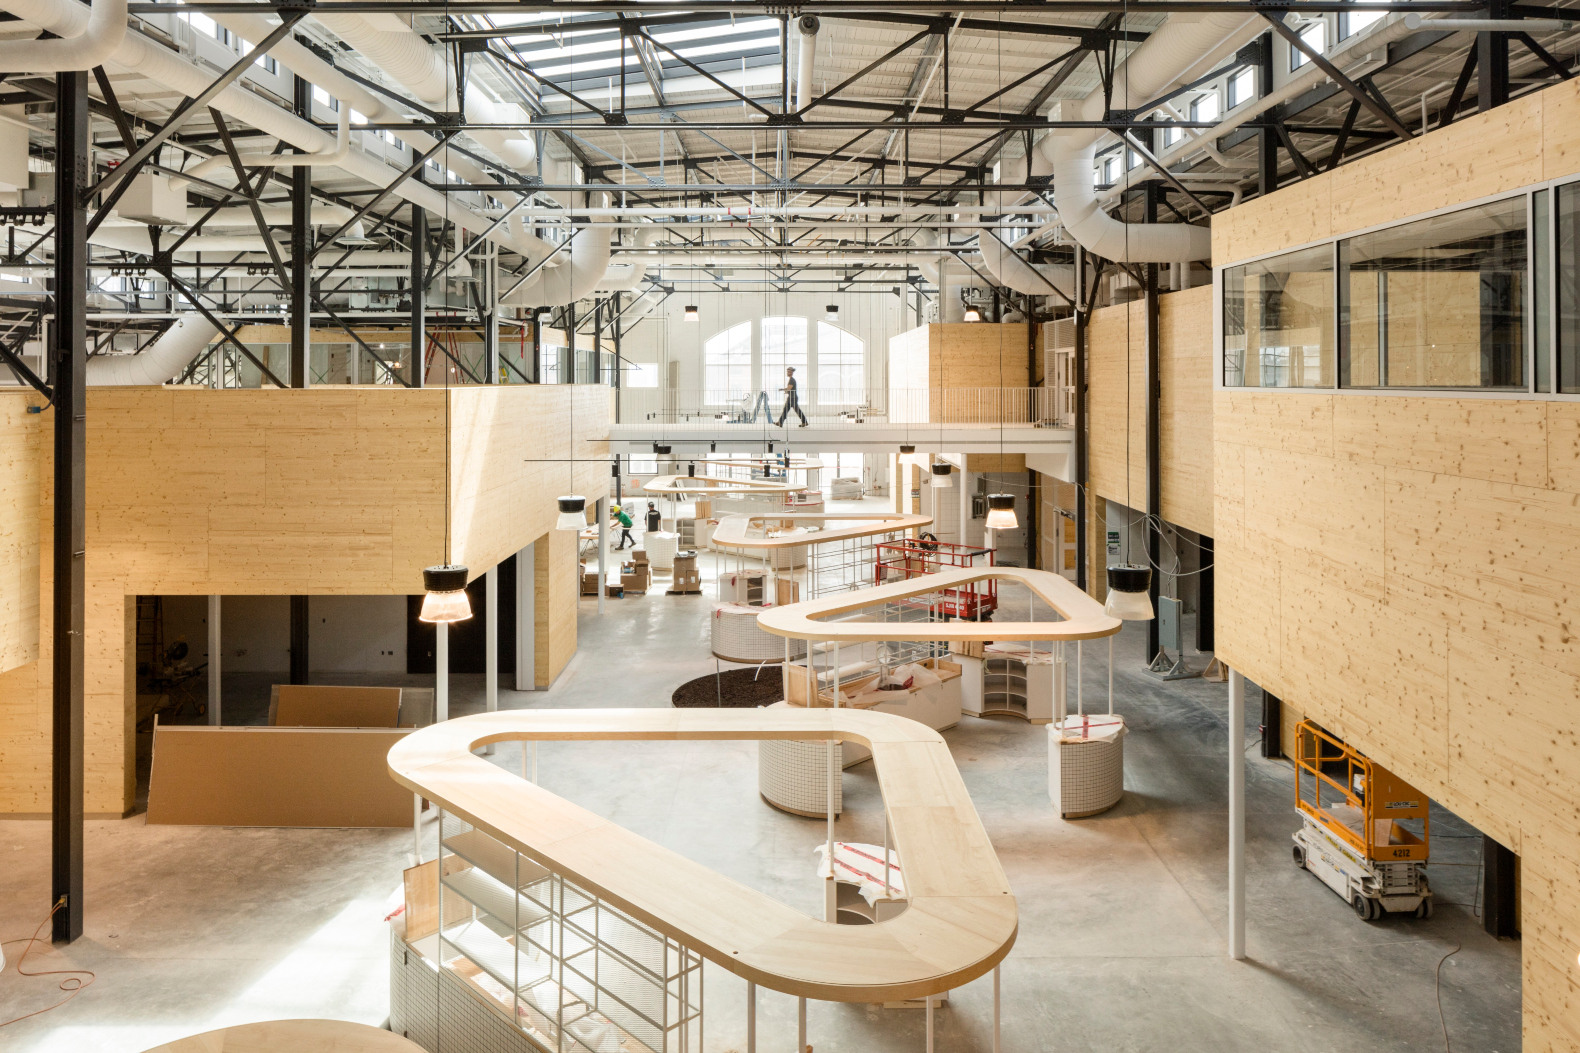 A 1923 building in Quebec is now a light-filled public market complete with aquaponics systems